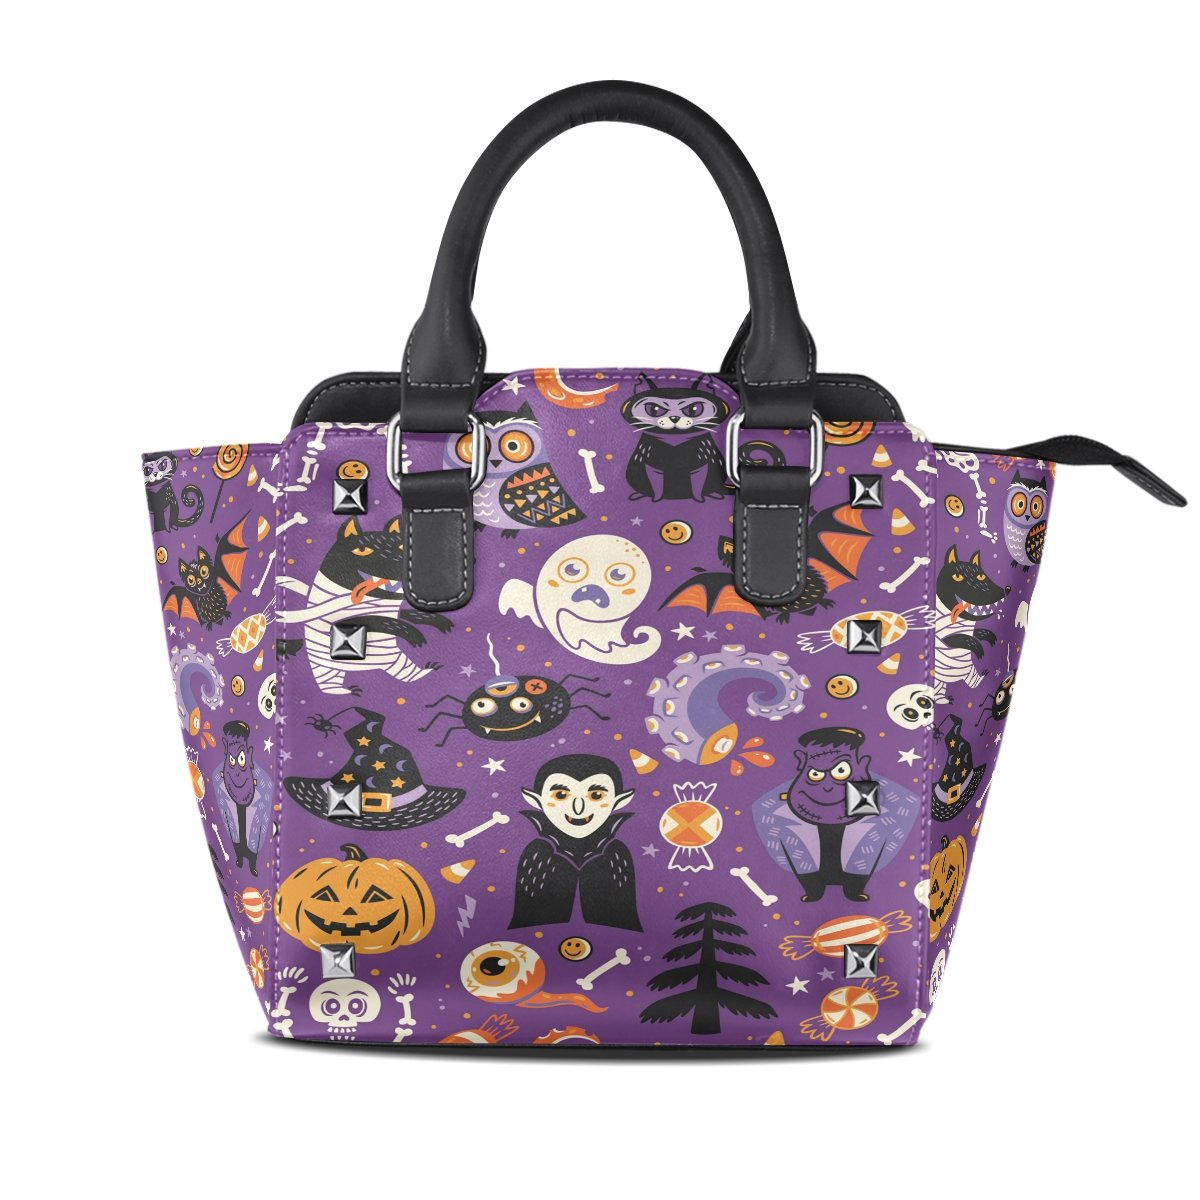 Womens Genuine Leather Hangbags Tote Bags Monsters Purse Shoulder Bags